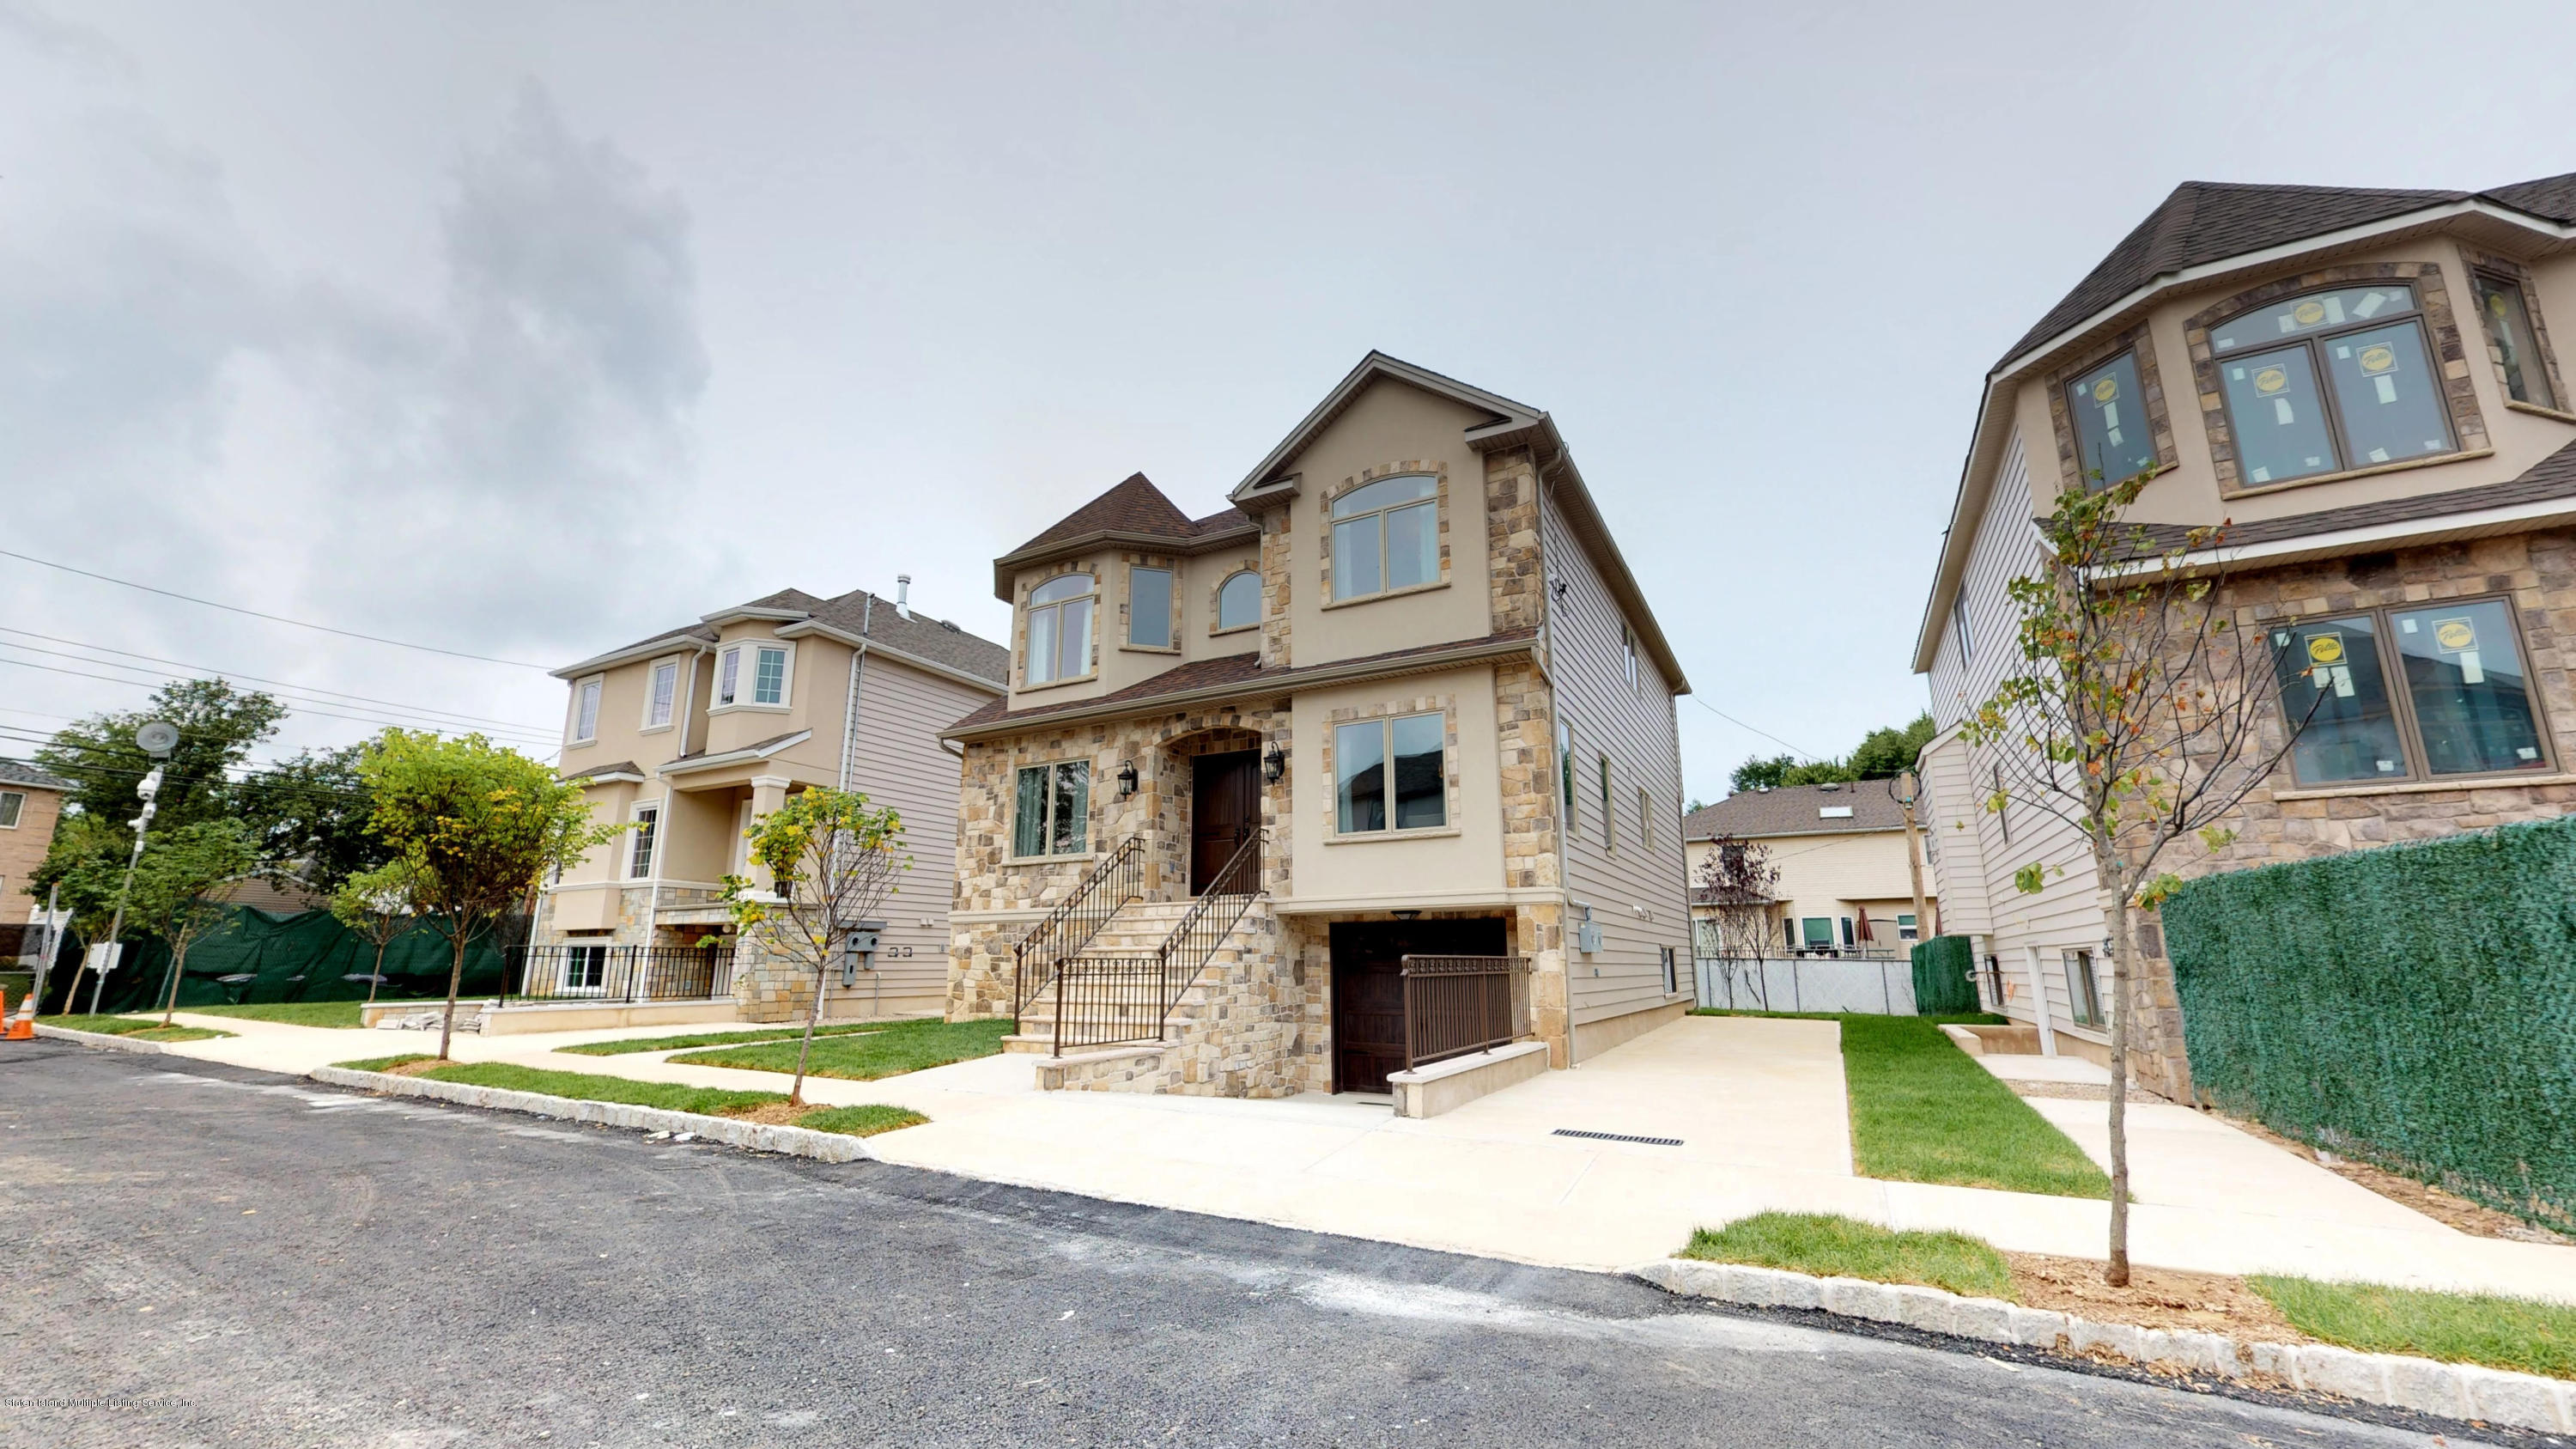 Two Family - Detached 11 Savona Court  Staten Island, NY 10309, MLS-1122646-3